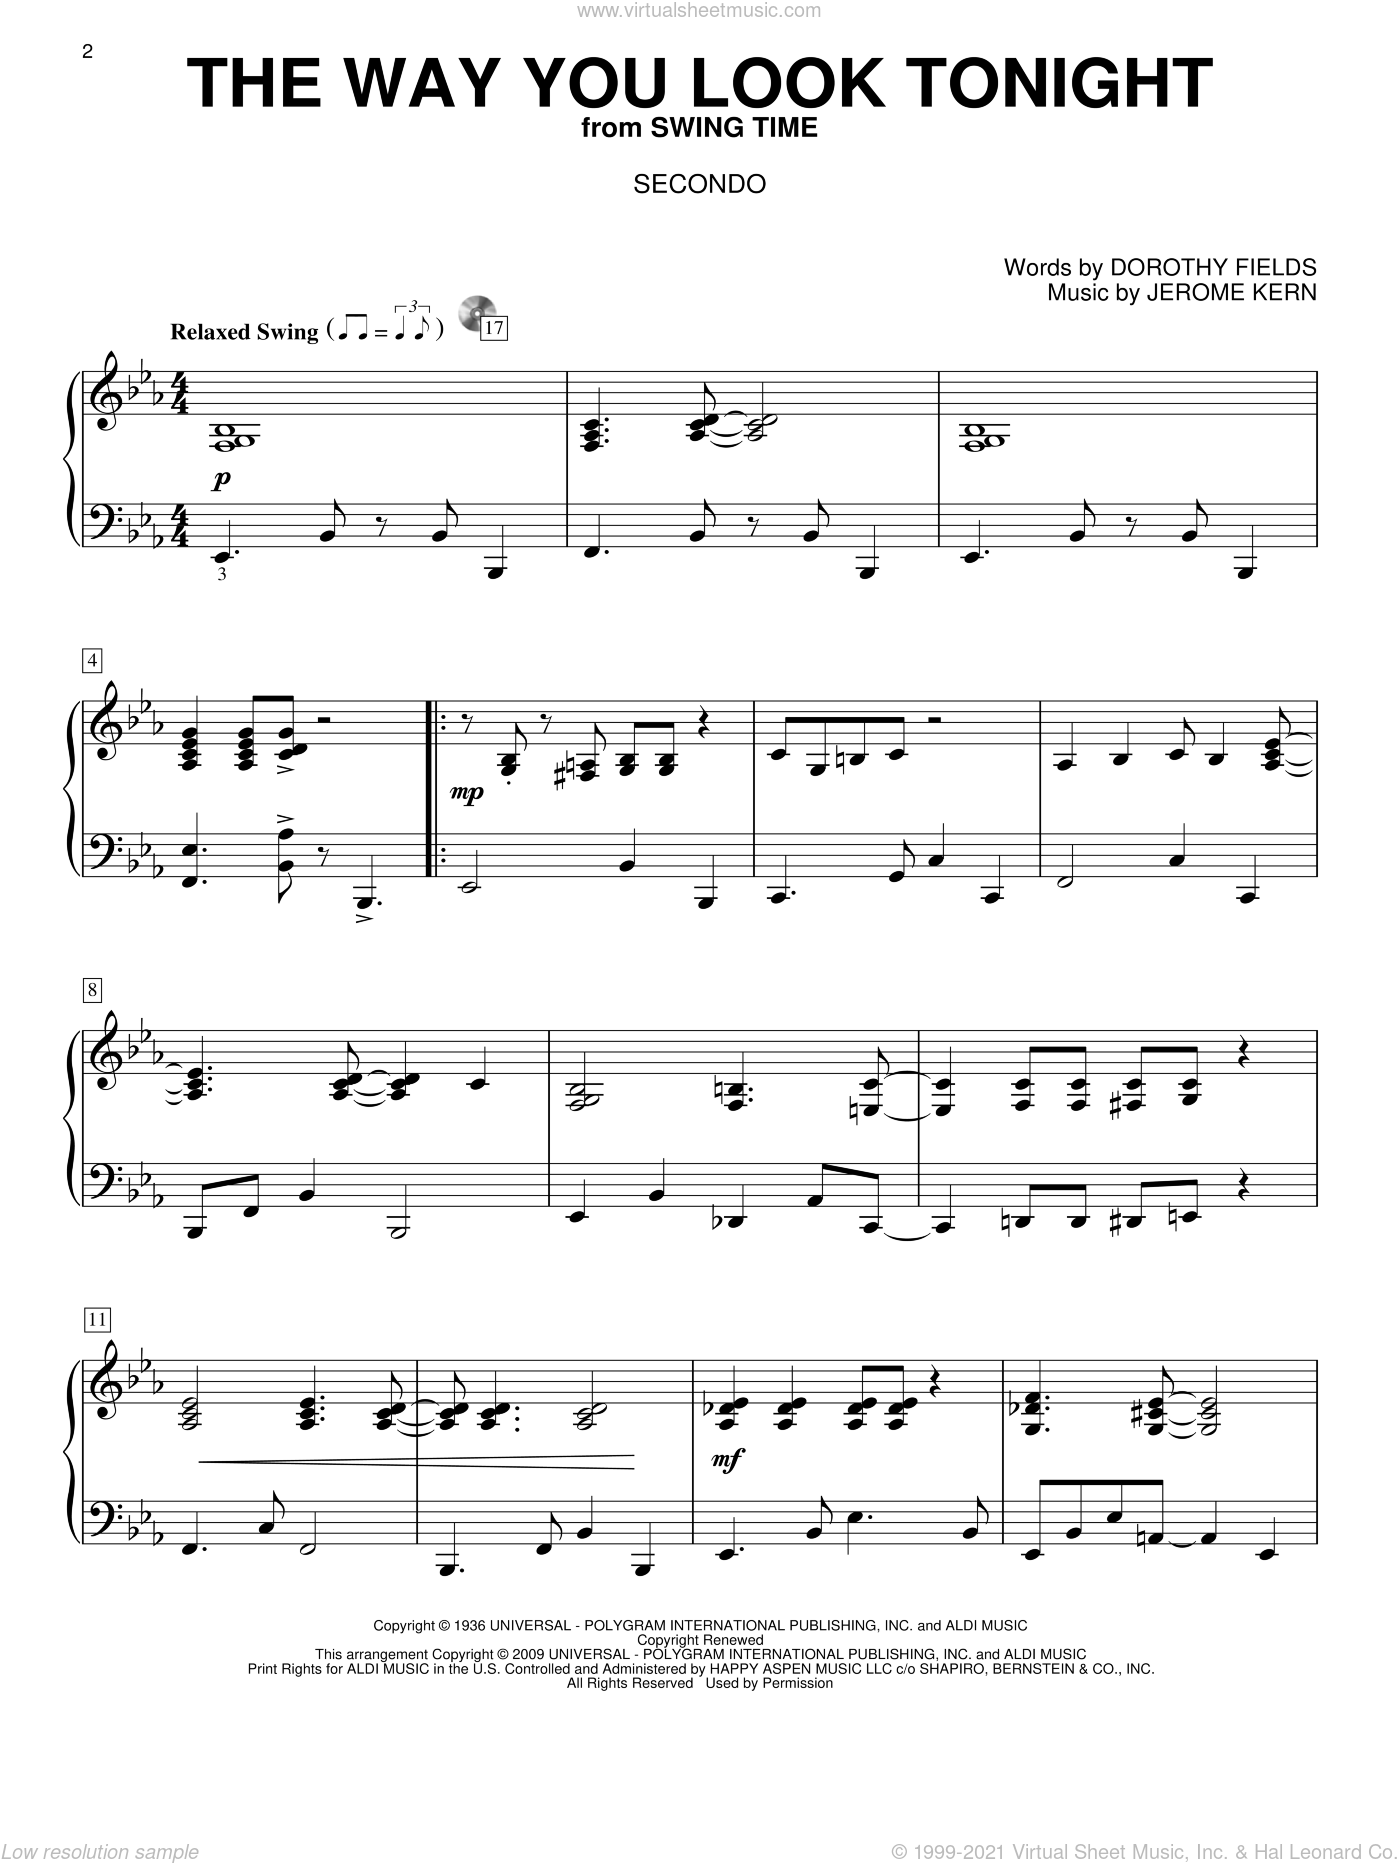 The Way You Look Tonight sheet music for piano four hands by Jerome Kern and Dorothy Fields, wedding score, intermediate. Score Image Preview.